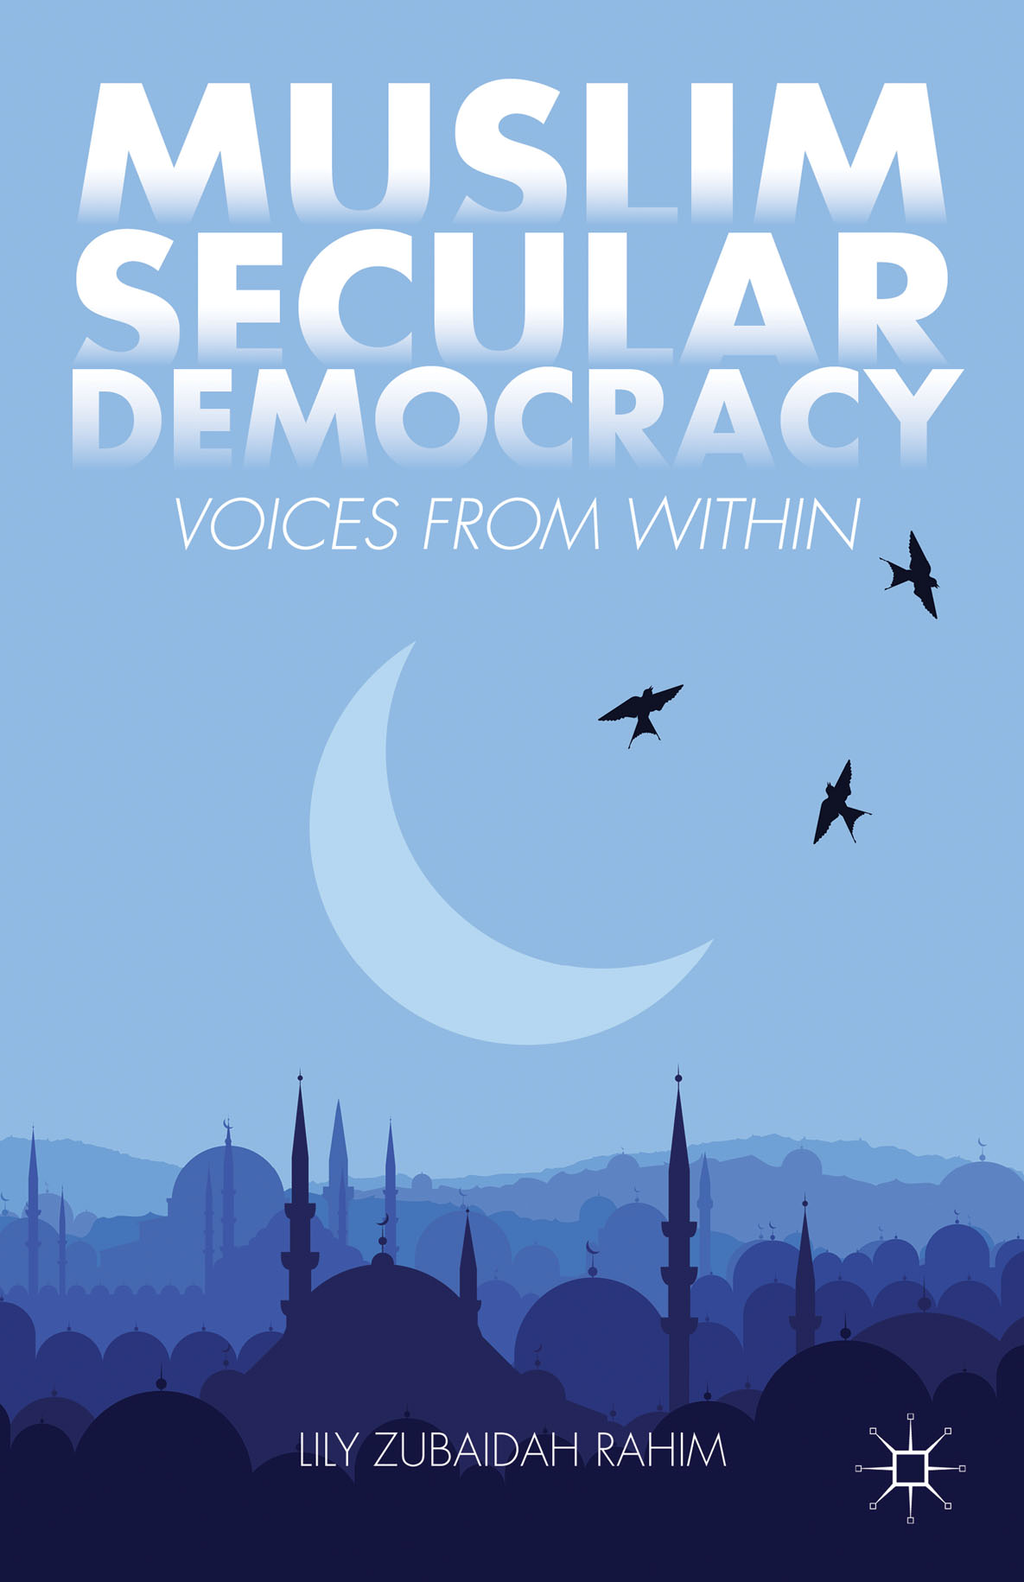 Muslim Secular Democracy Voices from Within